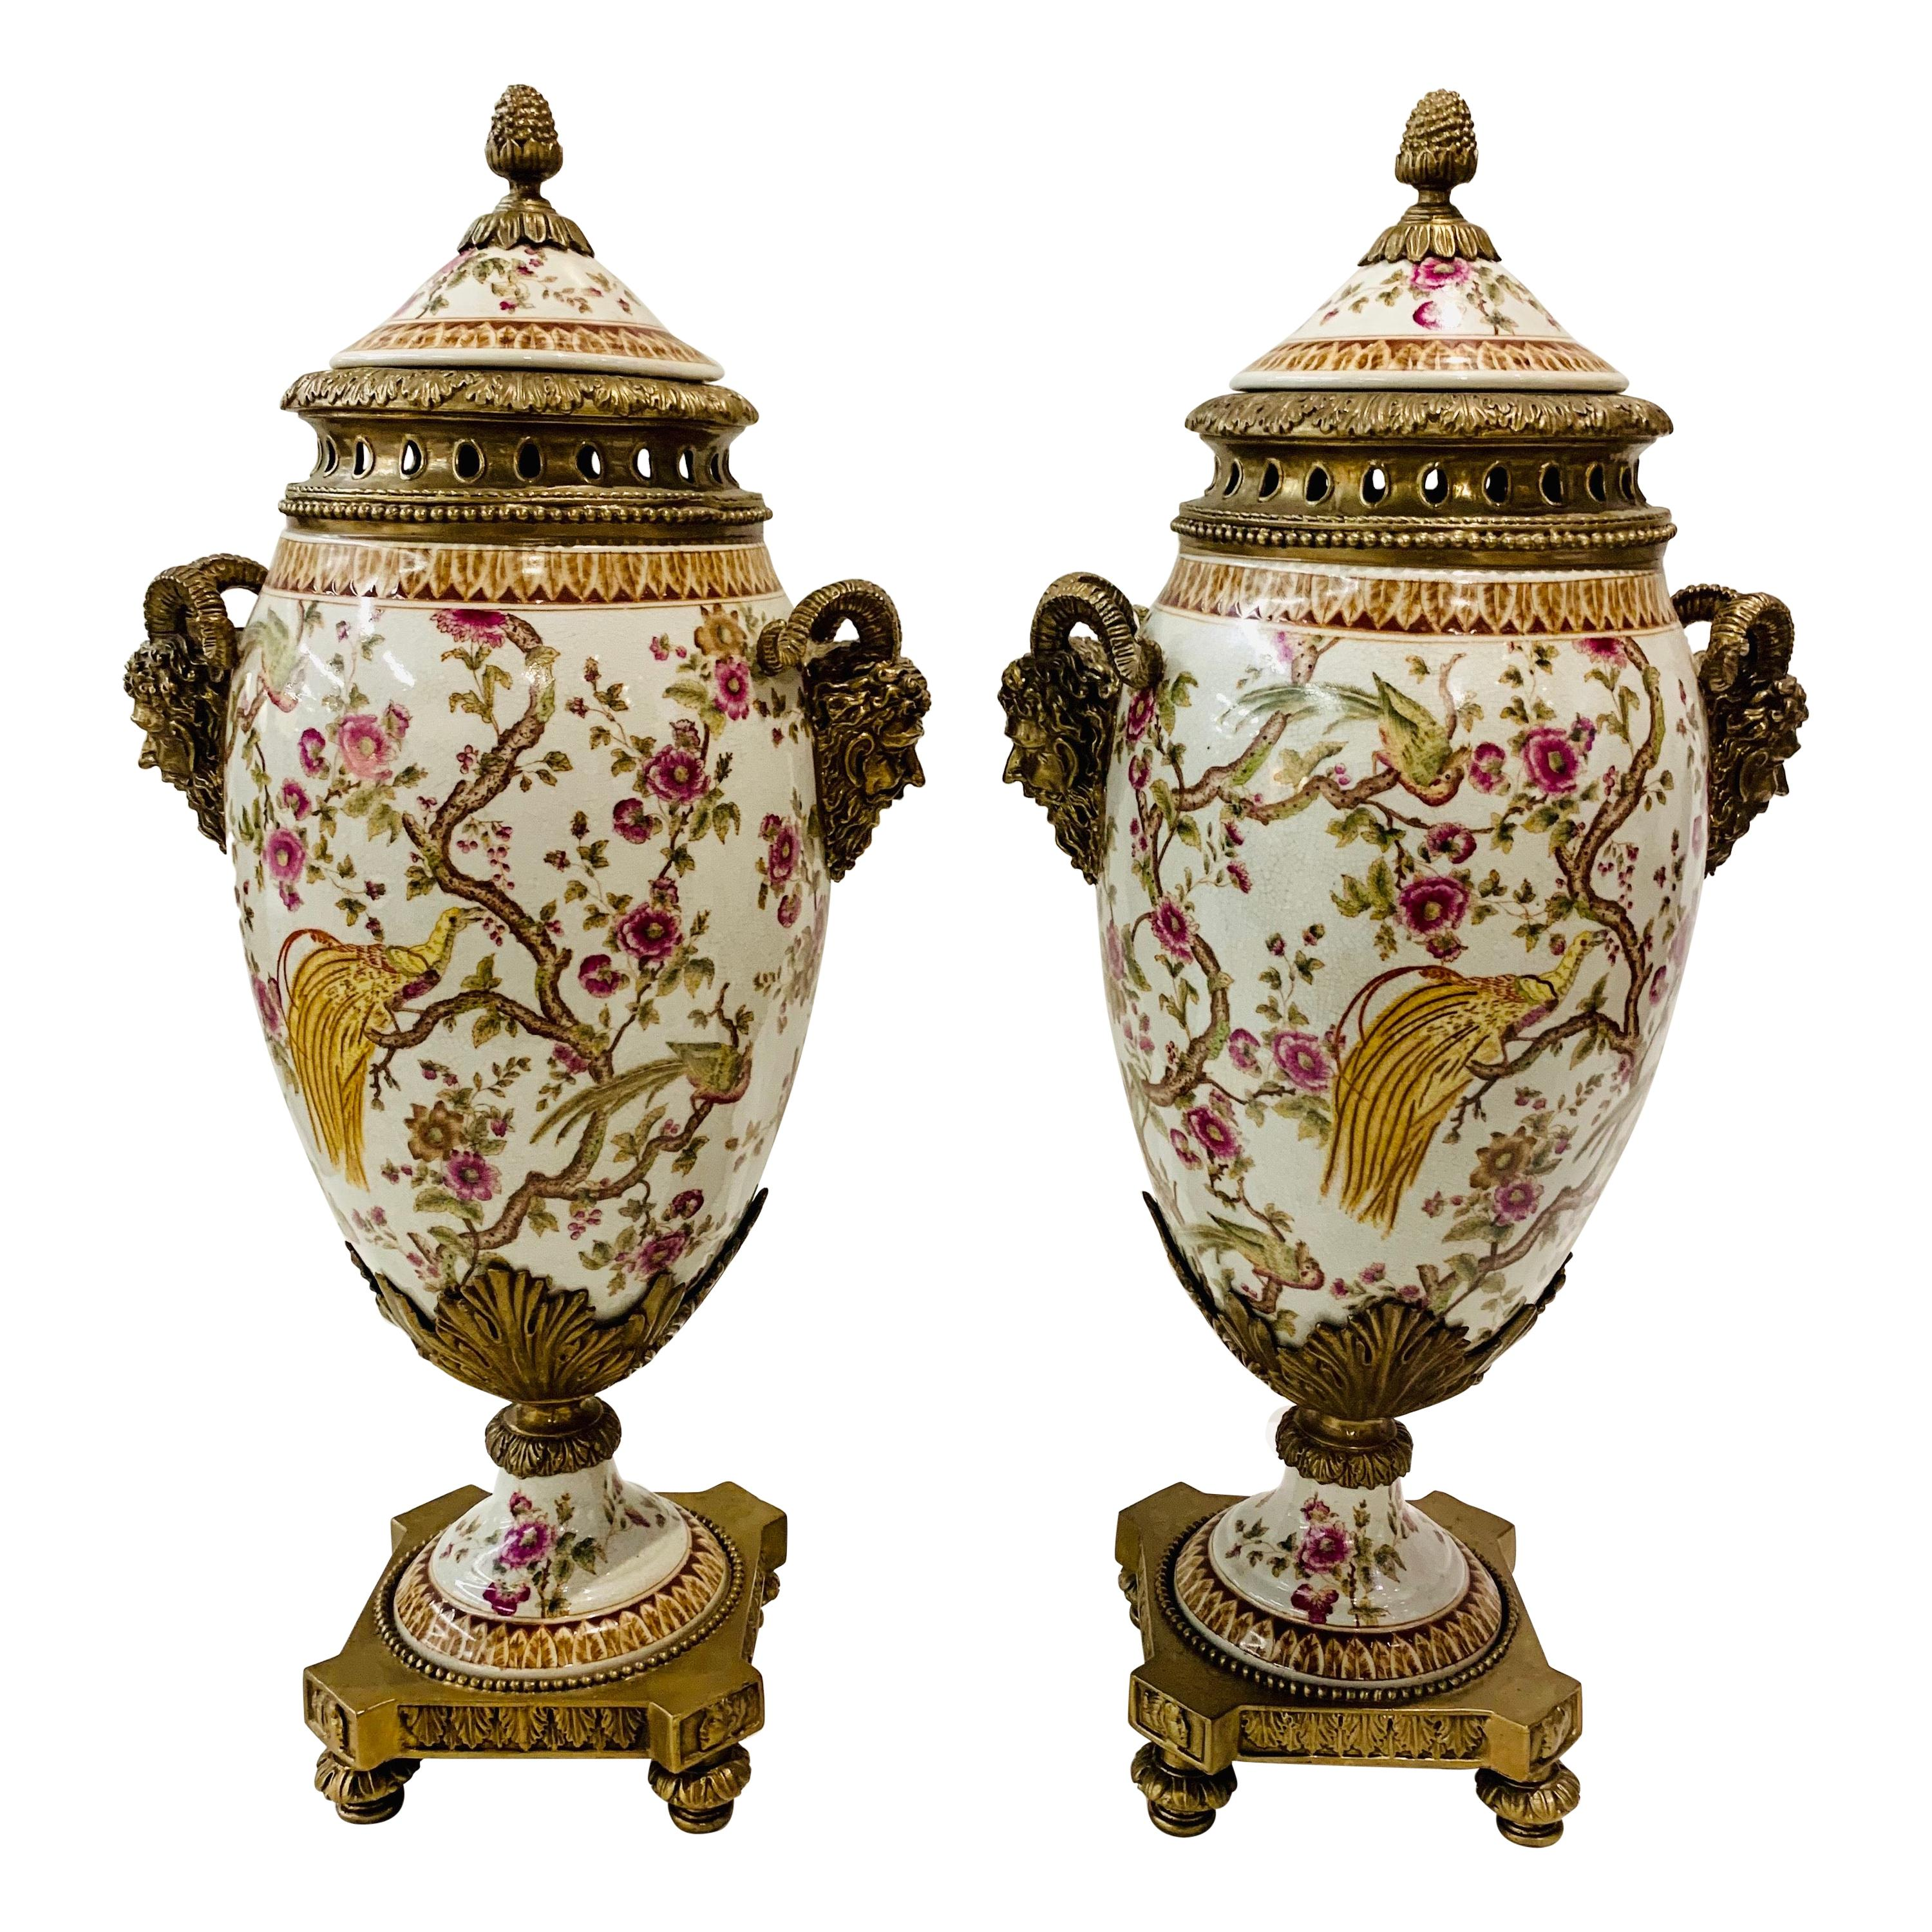 Porcelain and Bronze Covered Urns with Figural Ram's Head Handles